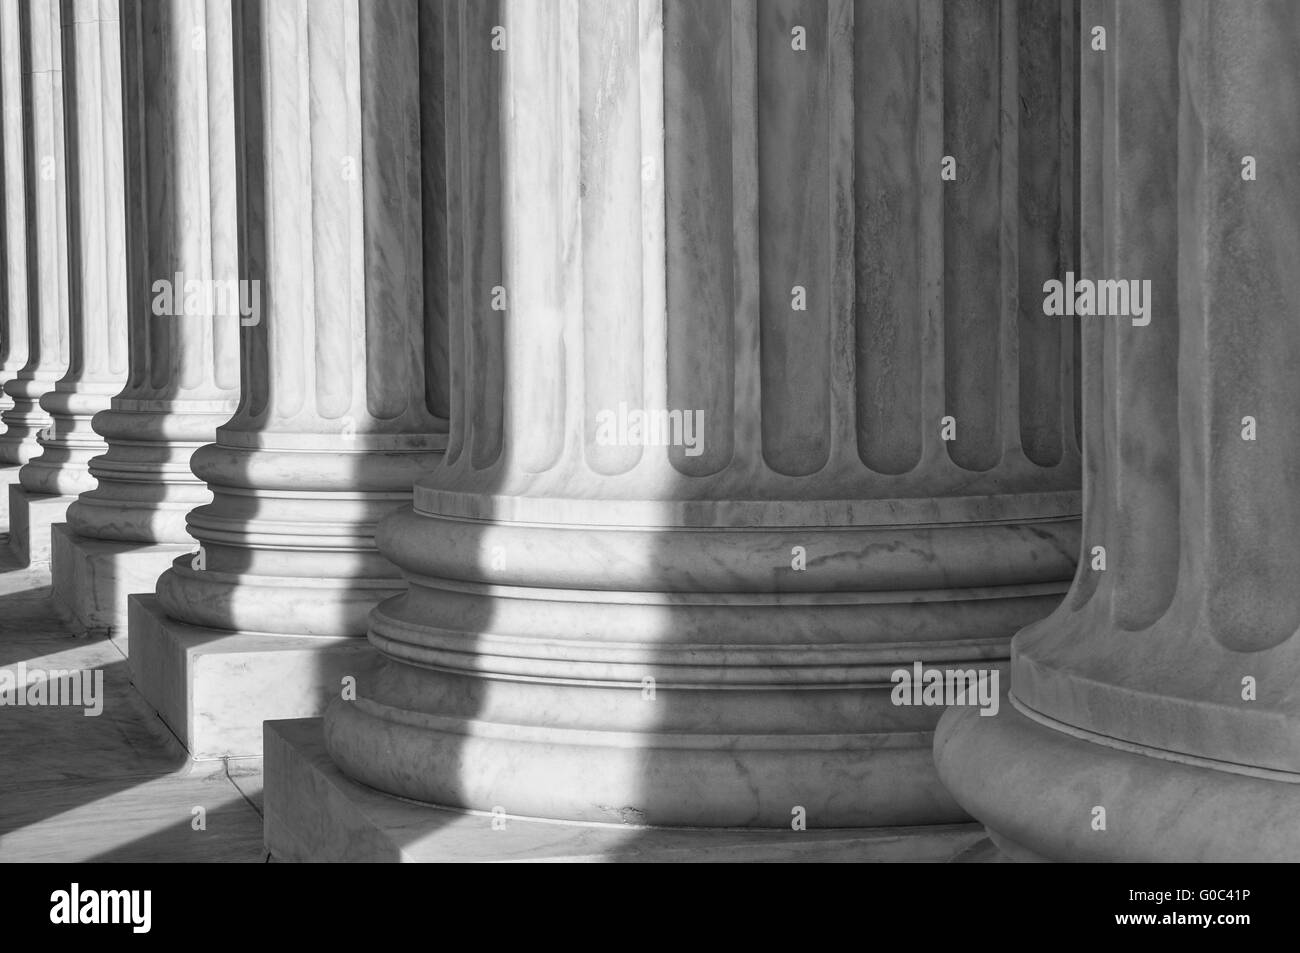 Pillars of the Supreme Court of the United States of America - Stock Image